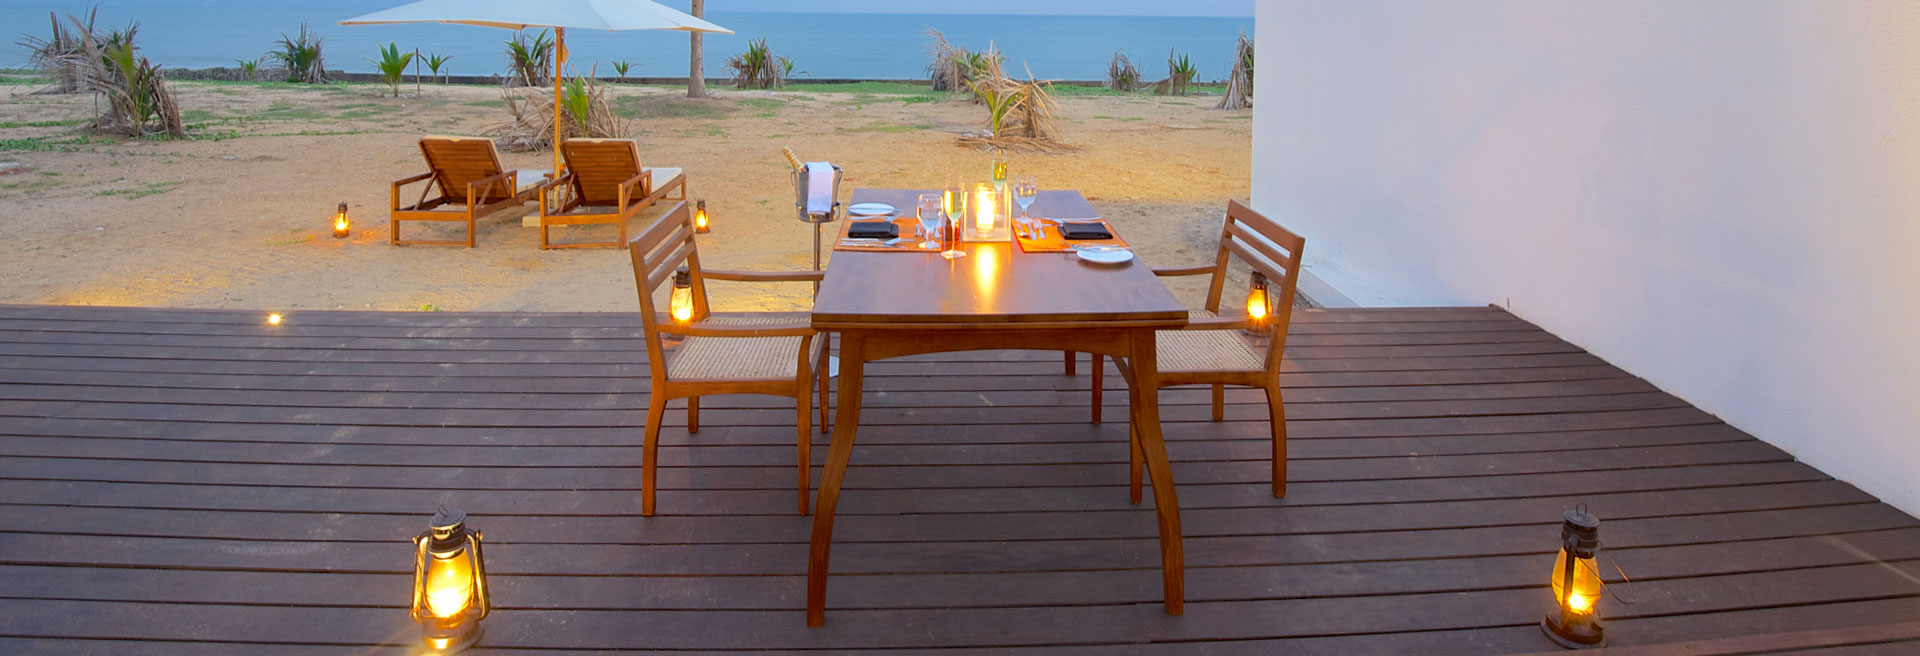 lovely outdoor diner by the beach